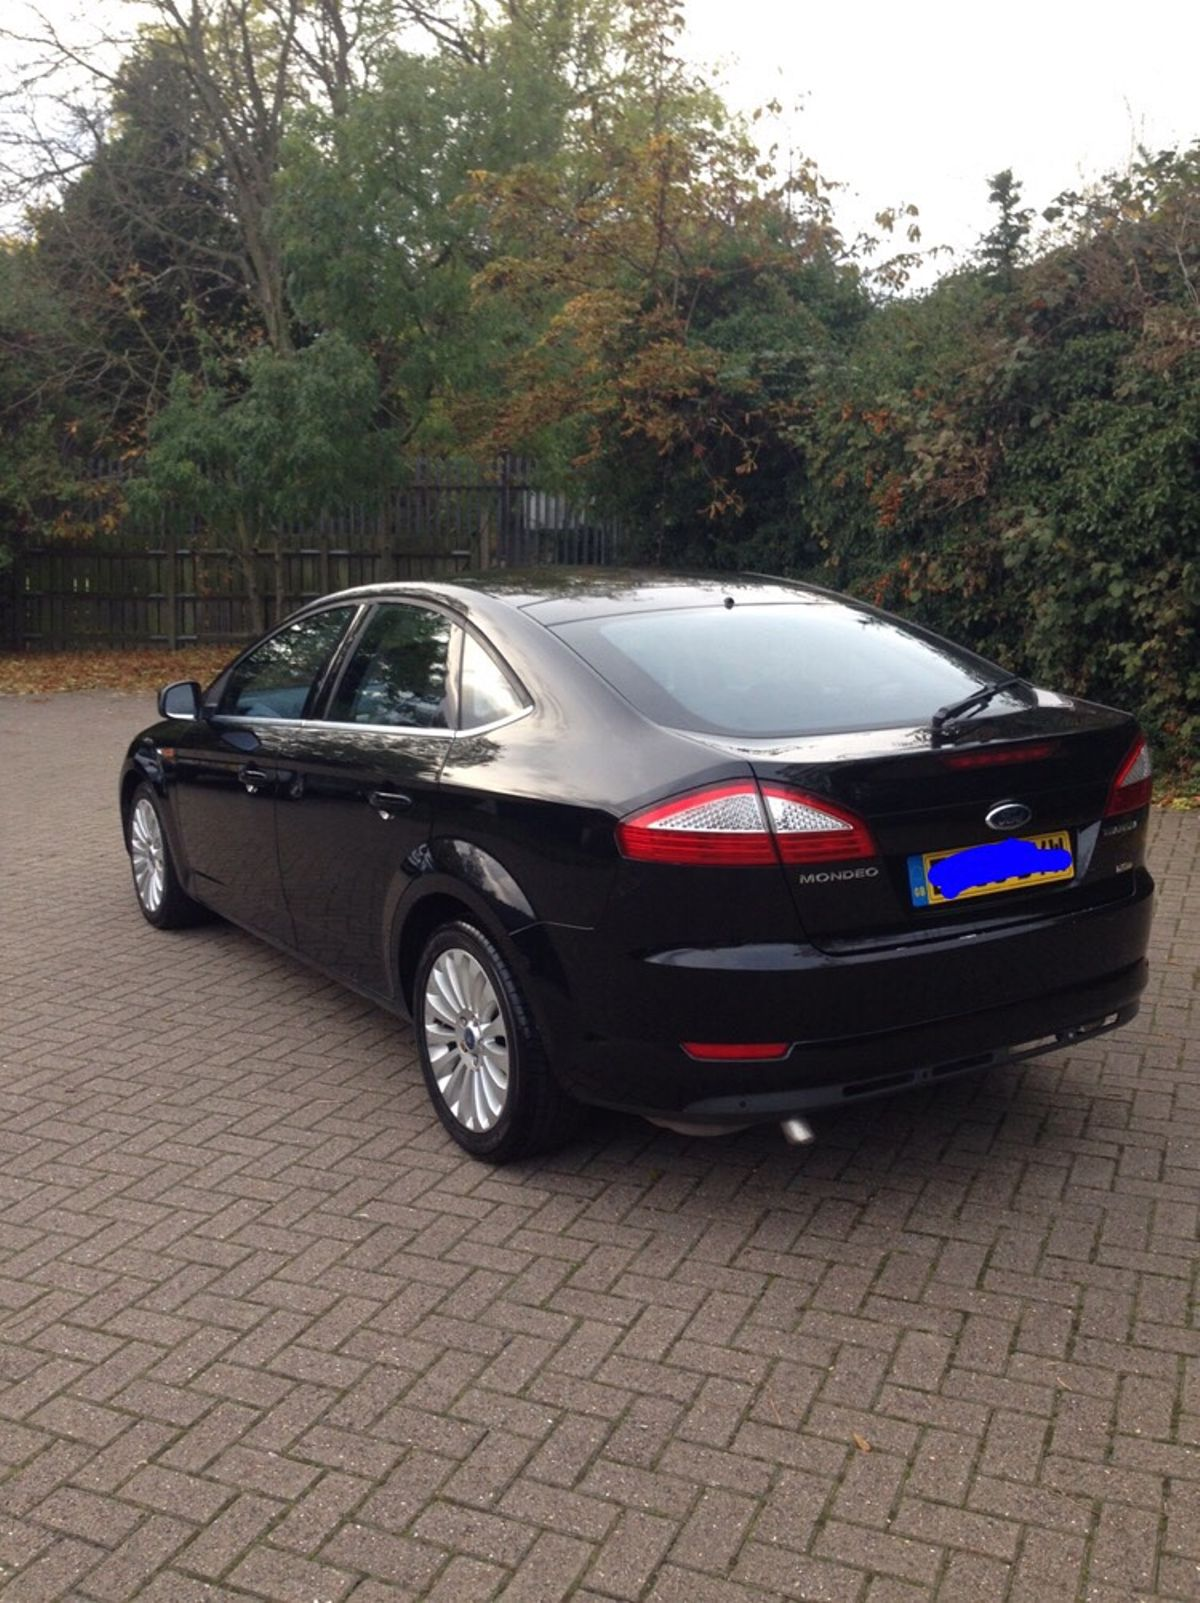 Cat D Cars for Sale Near Me Luxury ford Mondeo Cat D Repaired Quick Sale In N19 London for £2 500 00